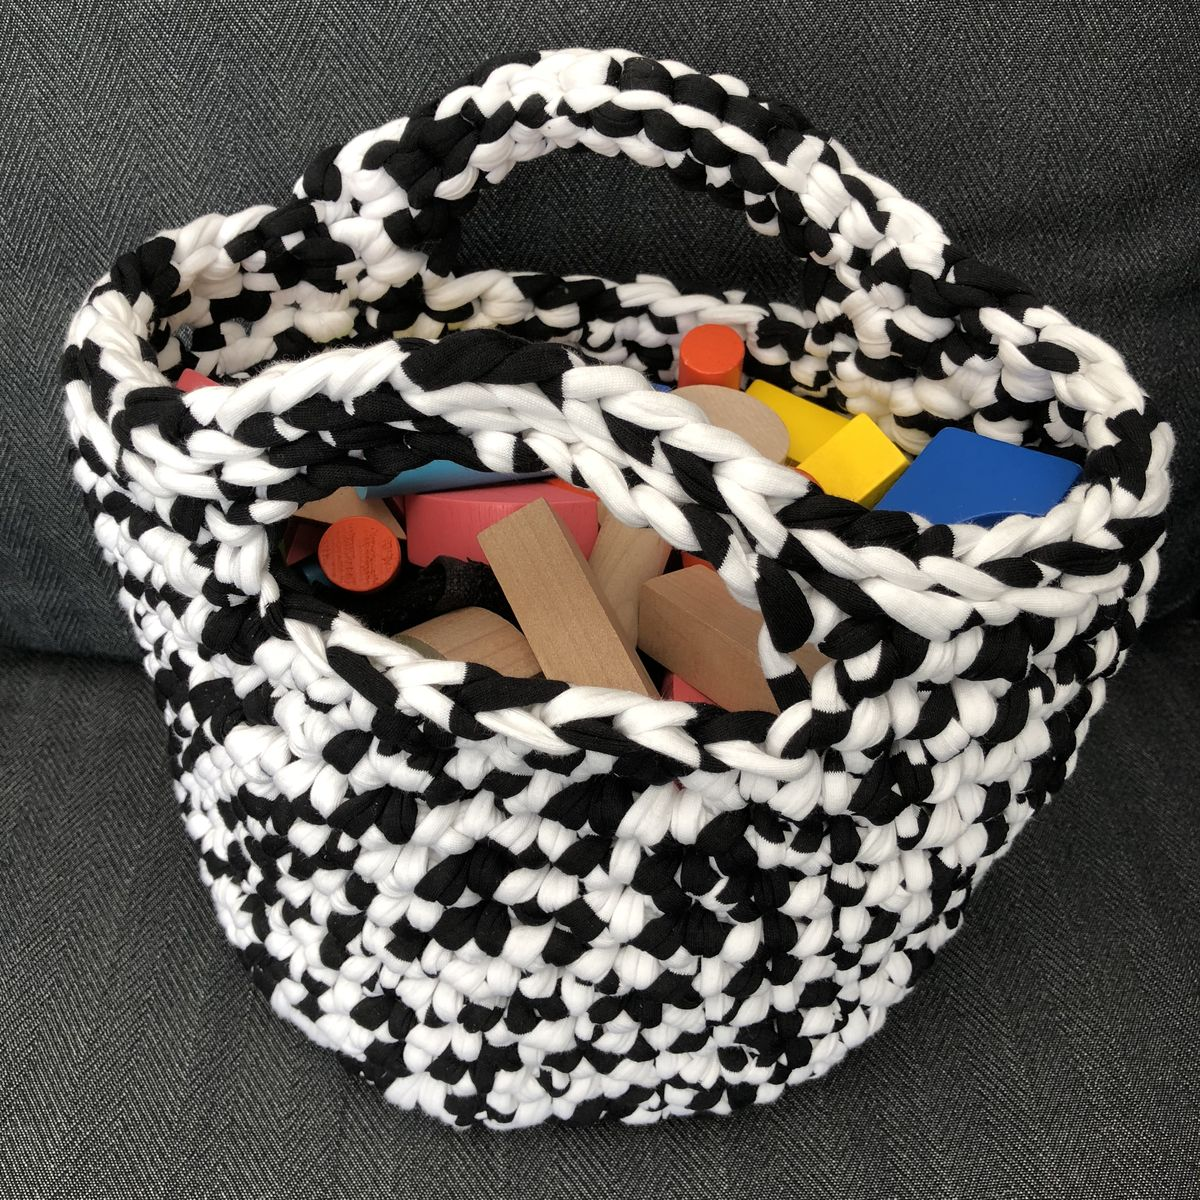 Storage container, basket style handbag, beach bag, plant pot cover - product images  of